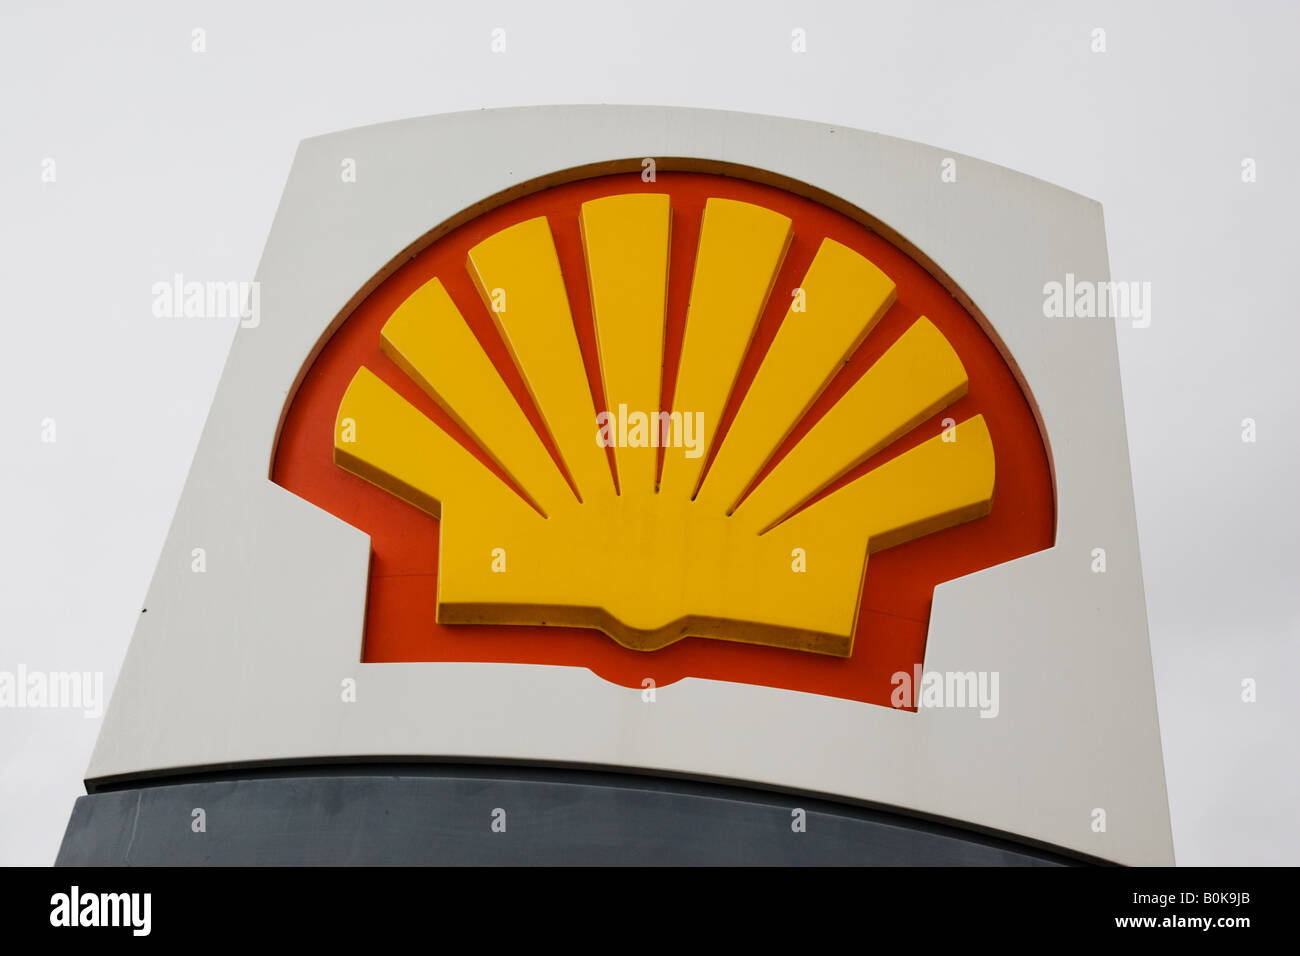 Shell Gas Prices >> Petrol Station Logo Stock Photos & Petrol Station Logo Stock Images - Alamy